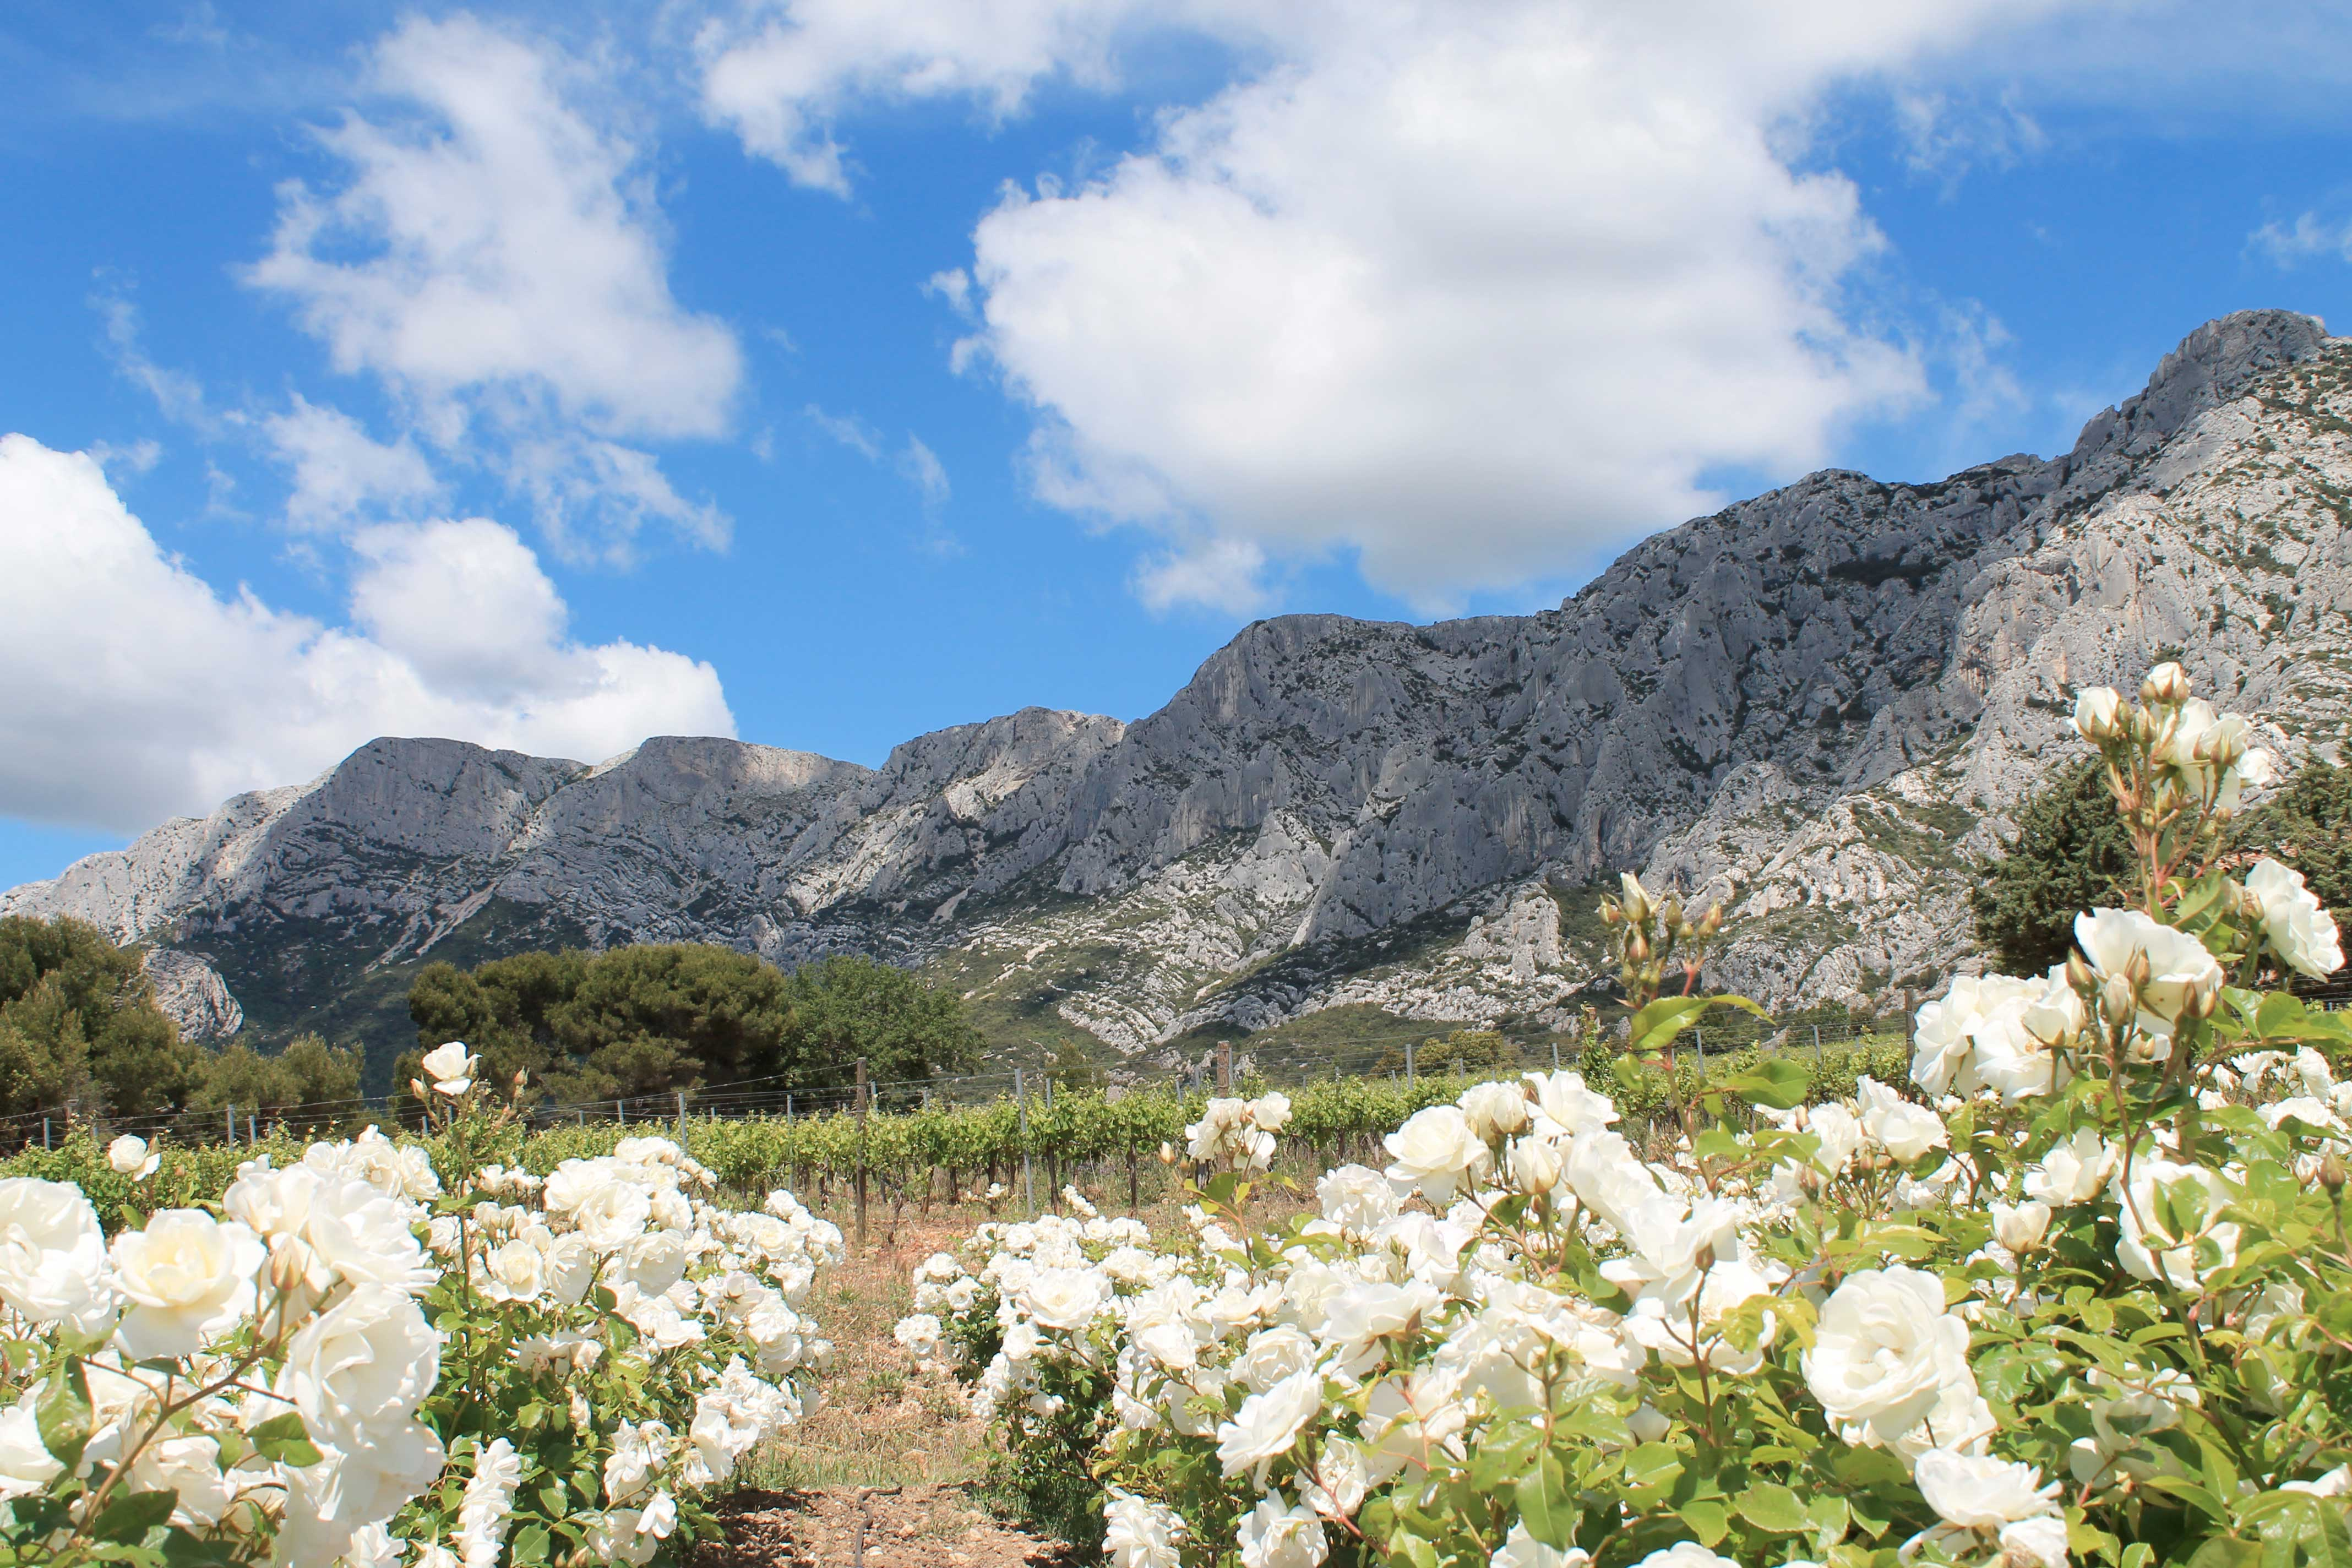 Wine and mountain excursions, blooming flowers and Mount Sainte Victoire